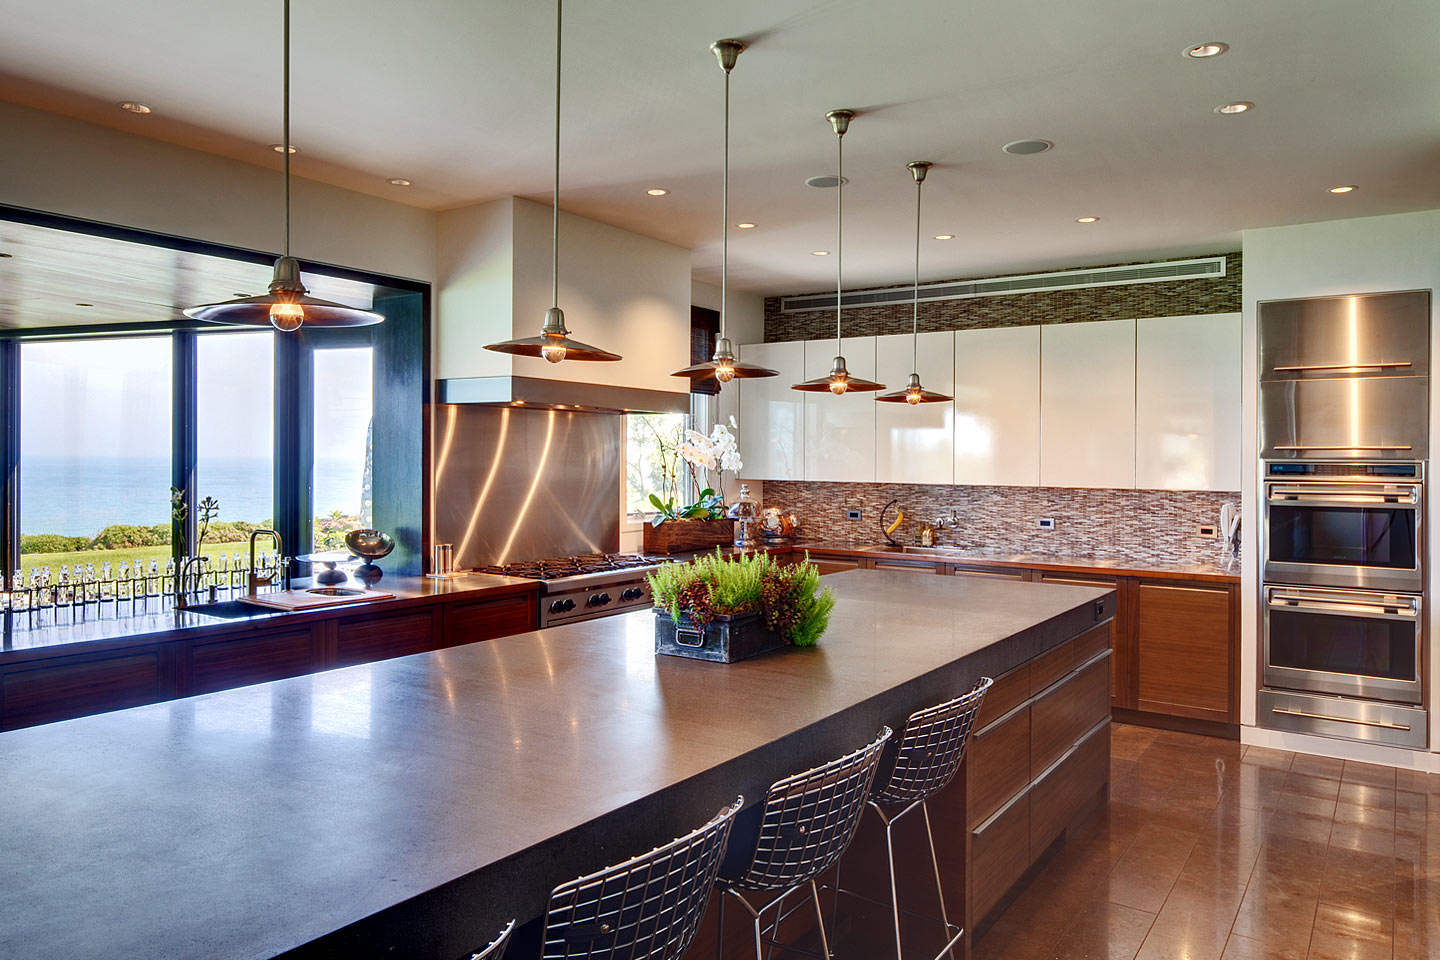 a perspective view (angle 01) of a modern professional kitchen, featuring views of Lake Michigan, photographed by Jacob Rosenfeld